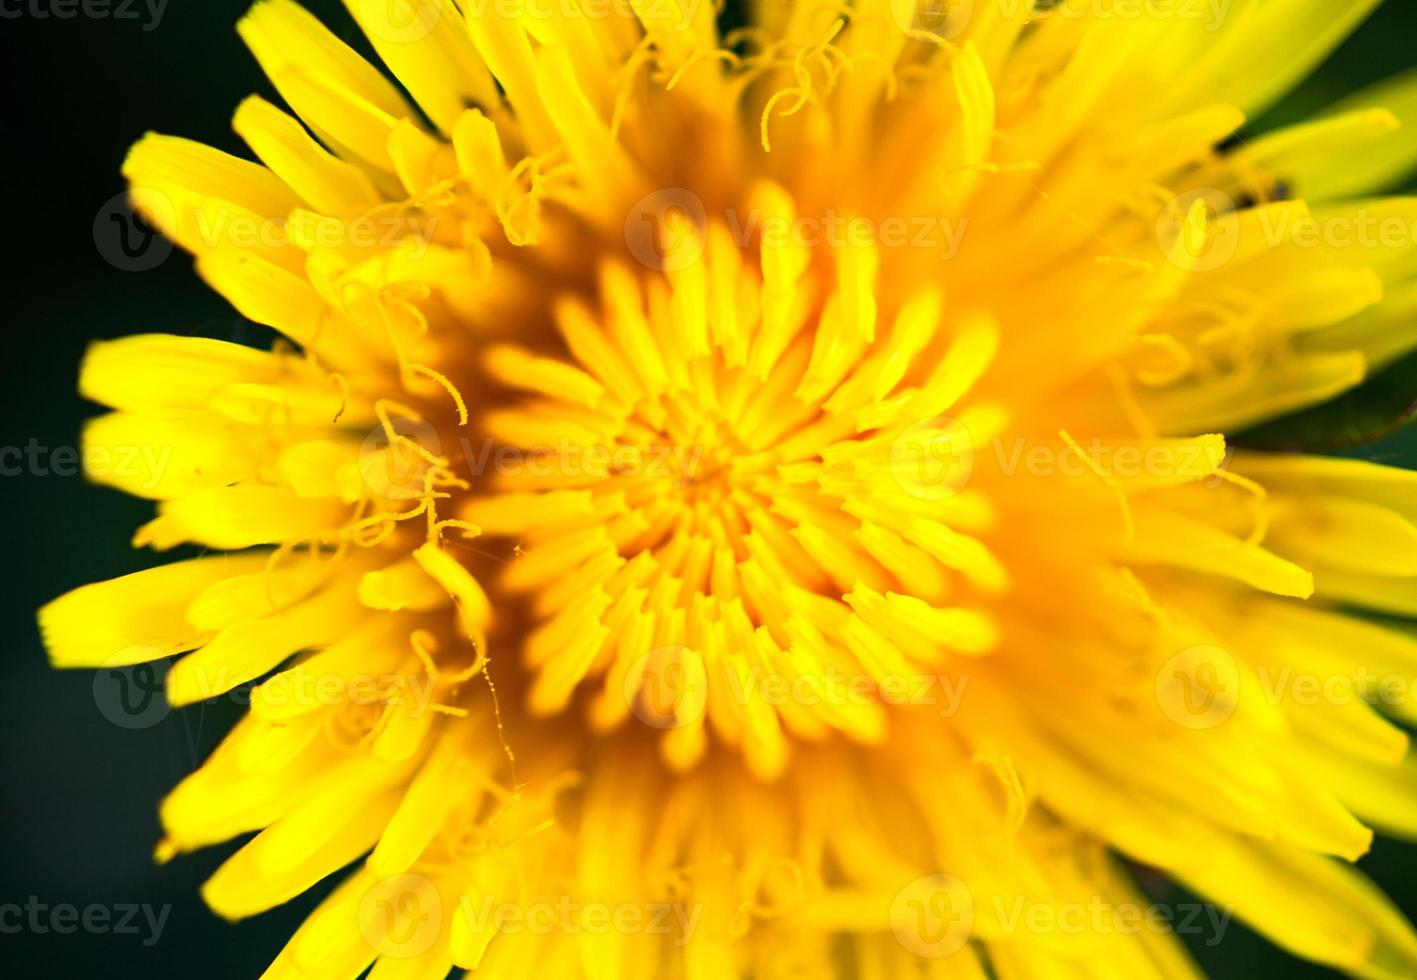 Closeup of the blooming yellow dandelion flower photo